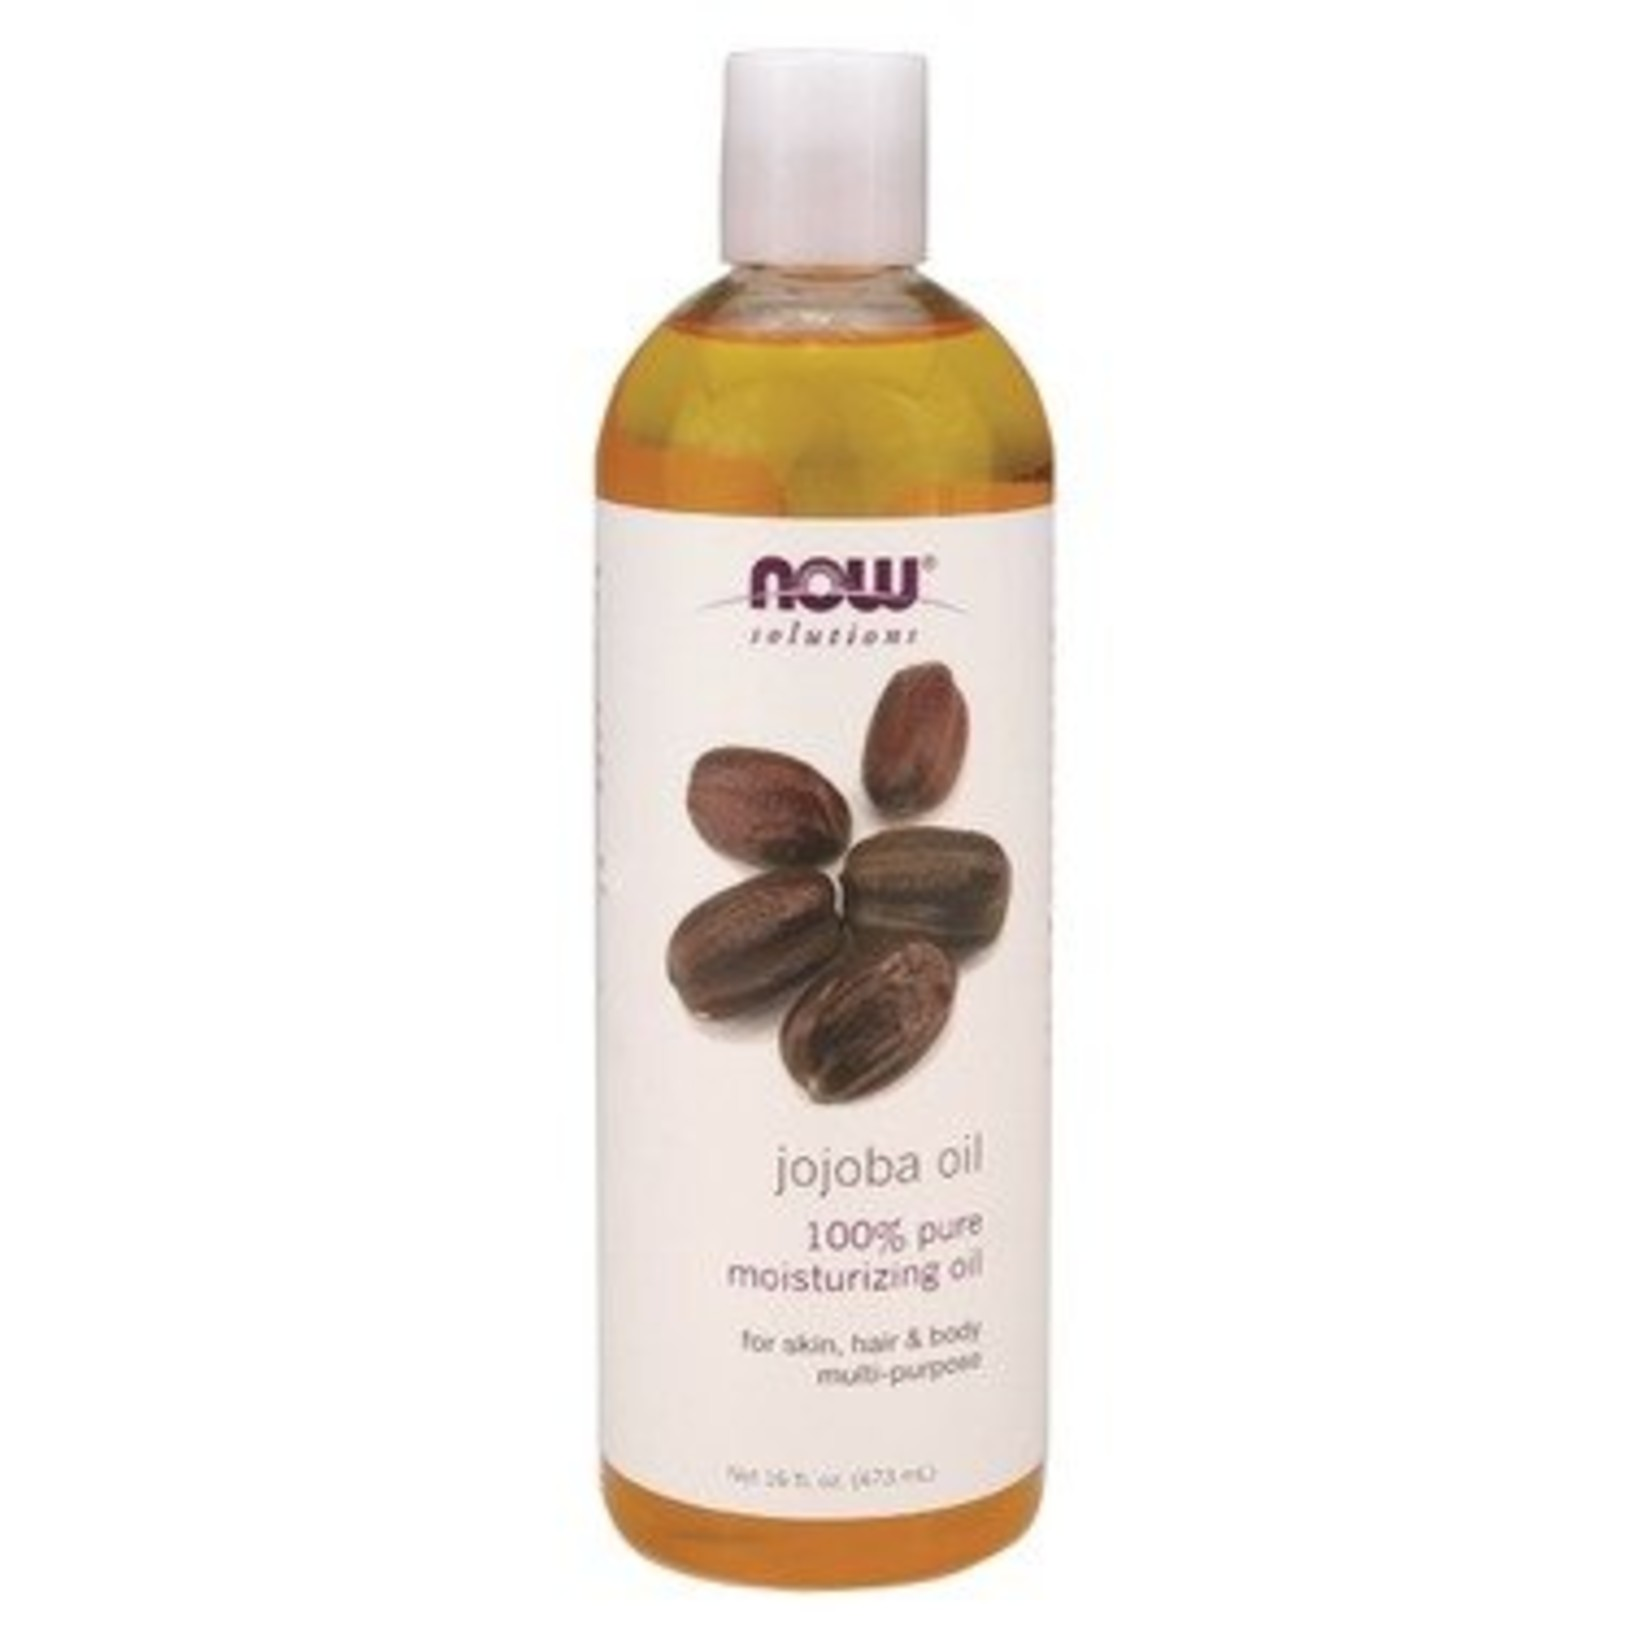 NOW Jojoba Oil